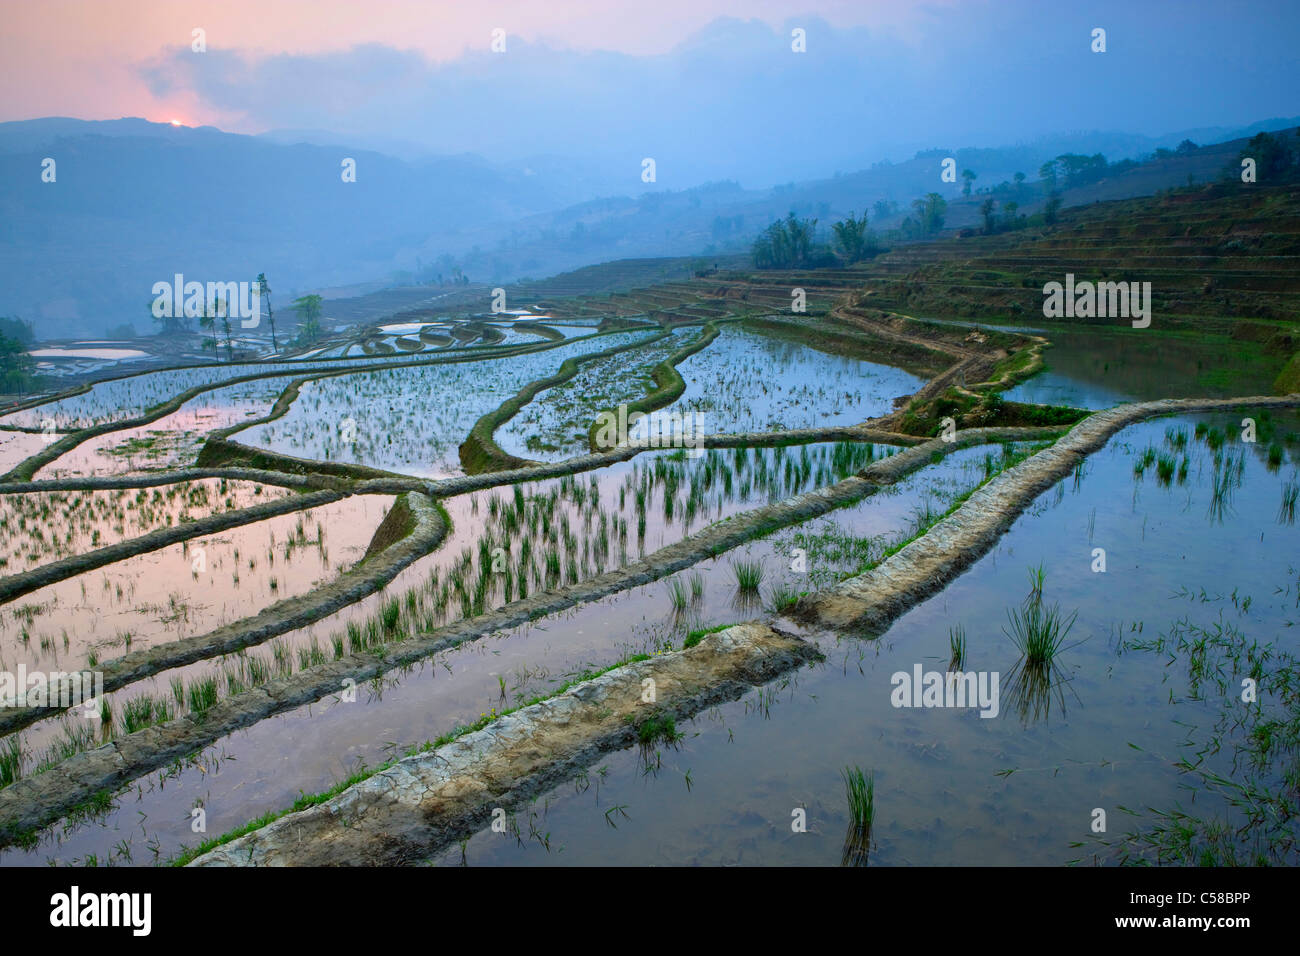 Yuanyang, China, Asia, rice terraces, growing of rice, rice fields, agriculture, water, morning light, sunrise, - Stock Image